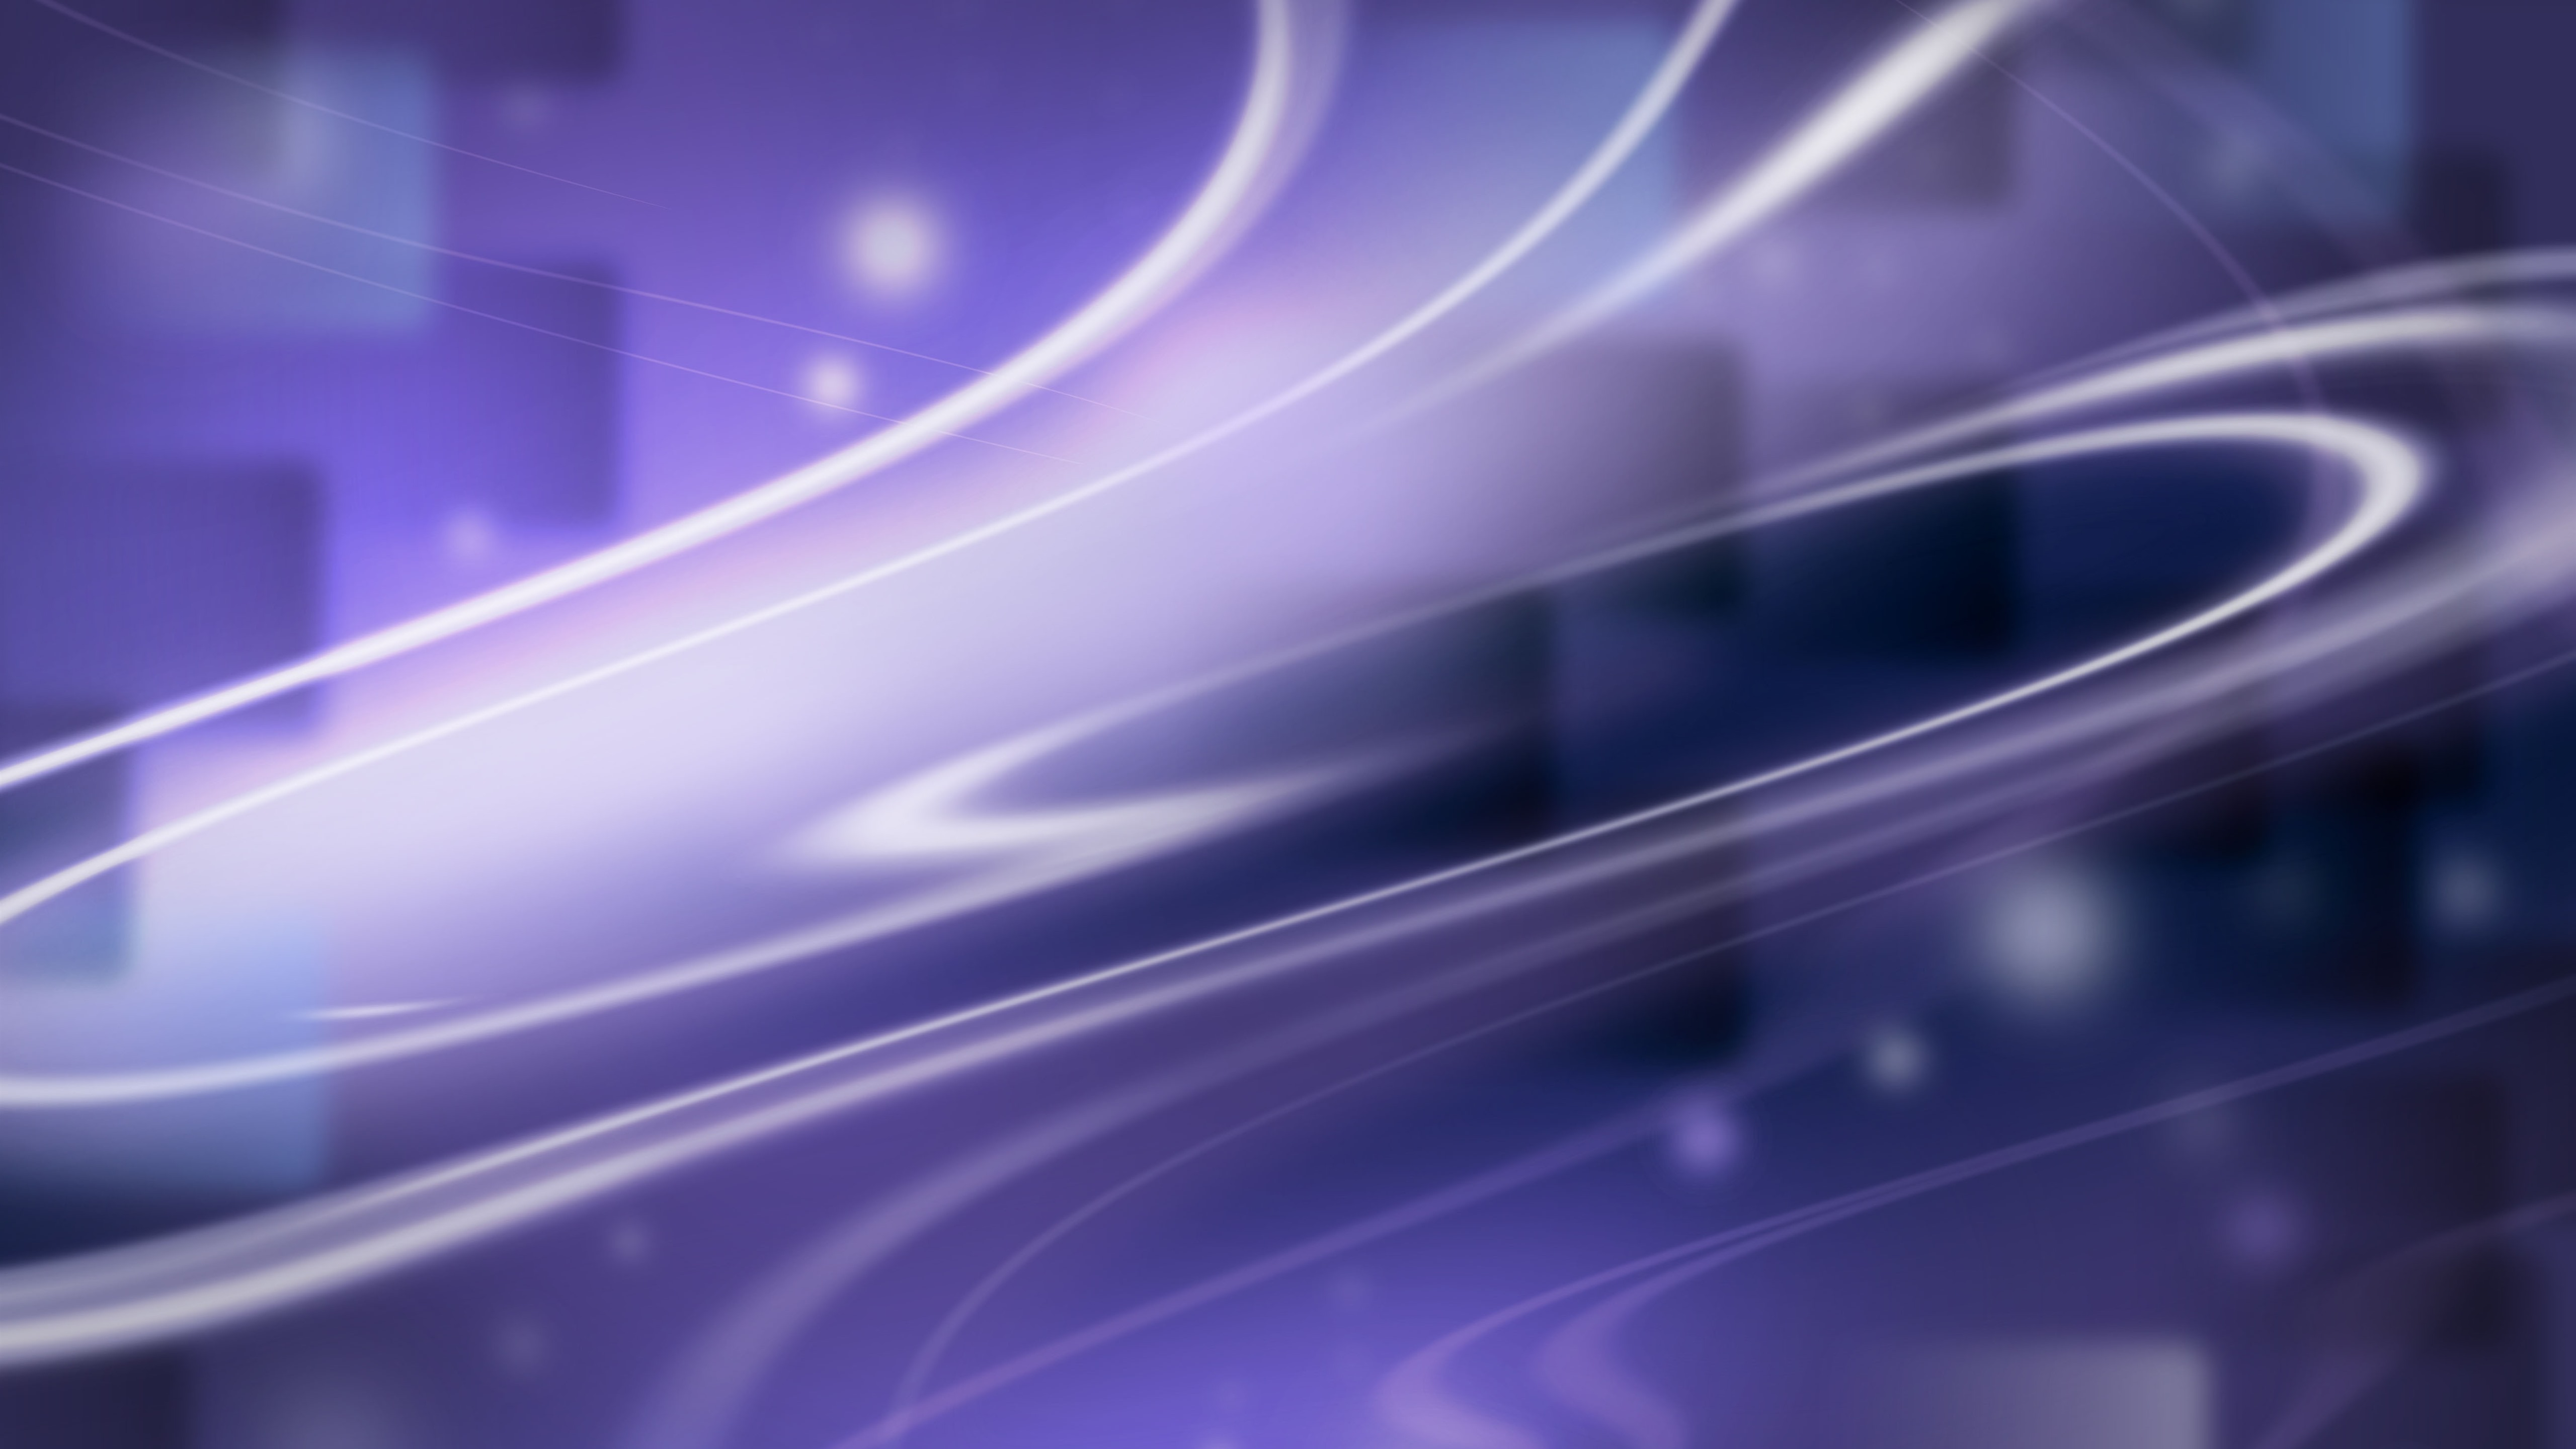 Wallpaper Light Purple Curves Lines Abstract 5120x2880 Uhd